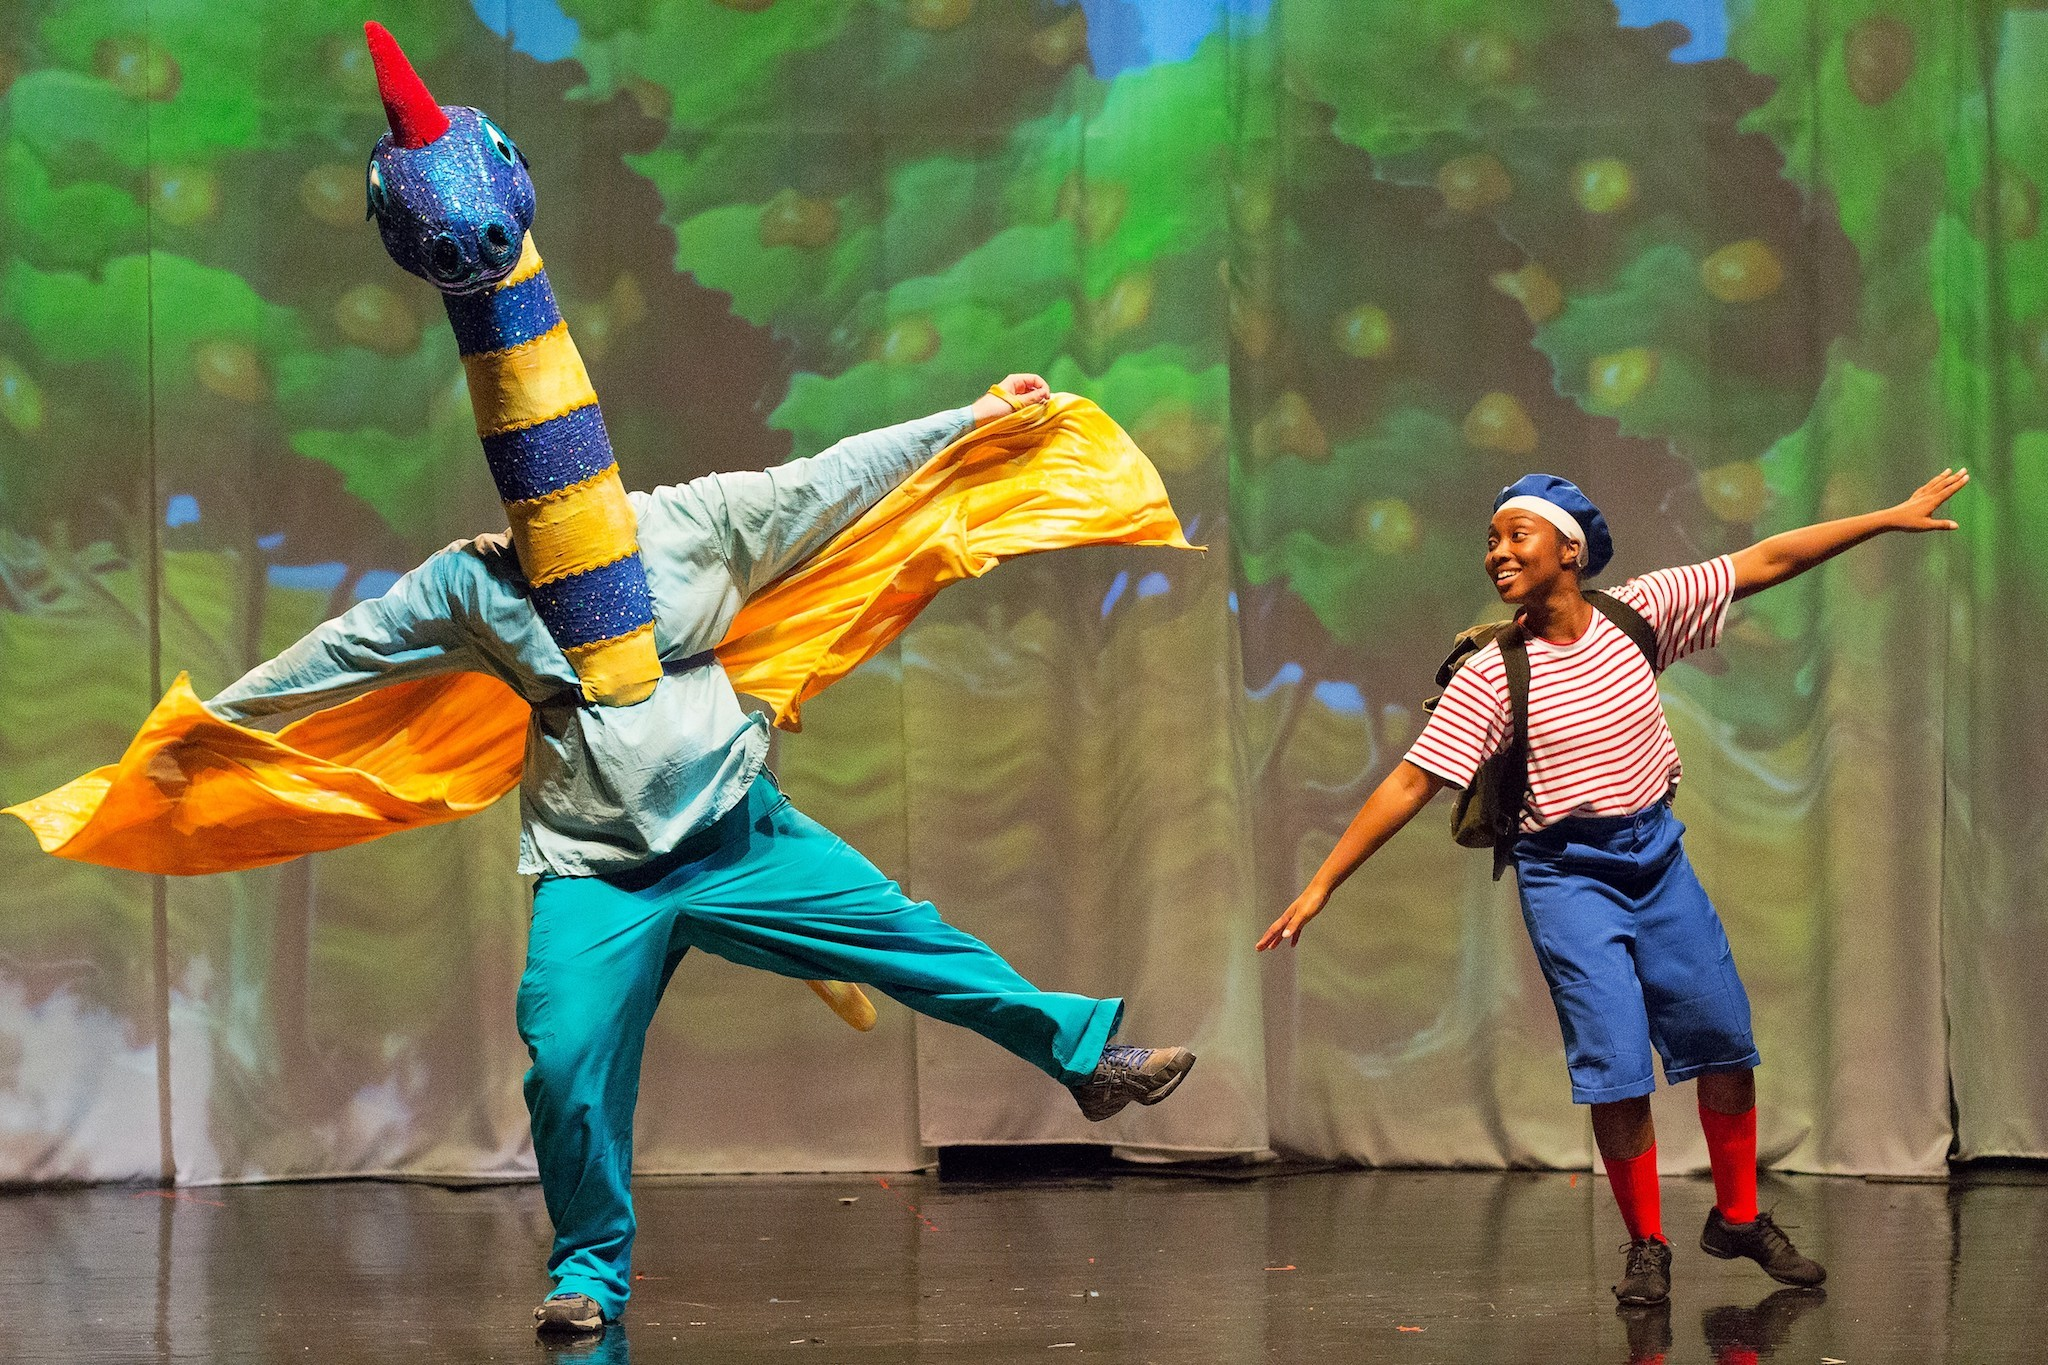 The Annenberg Center presents the Philadelphia International Children's Festival